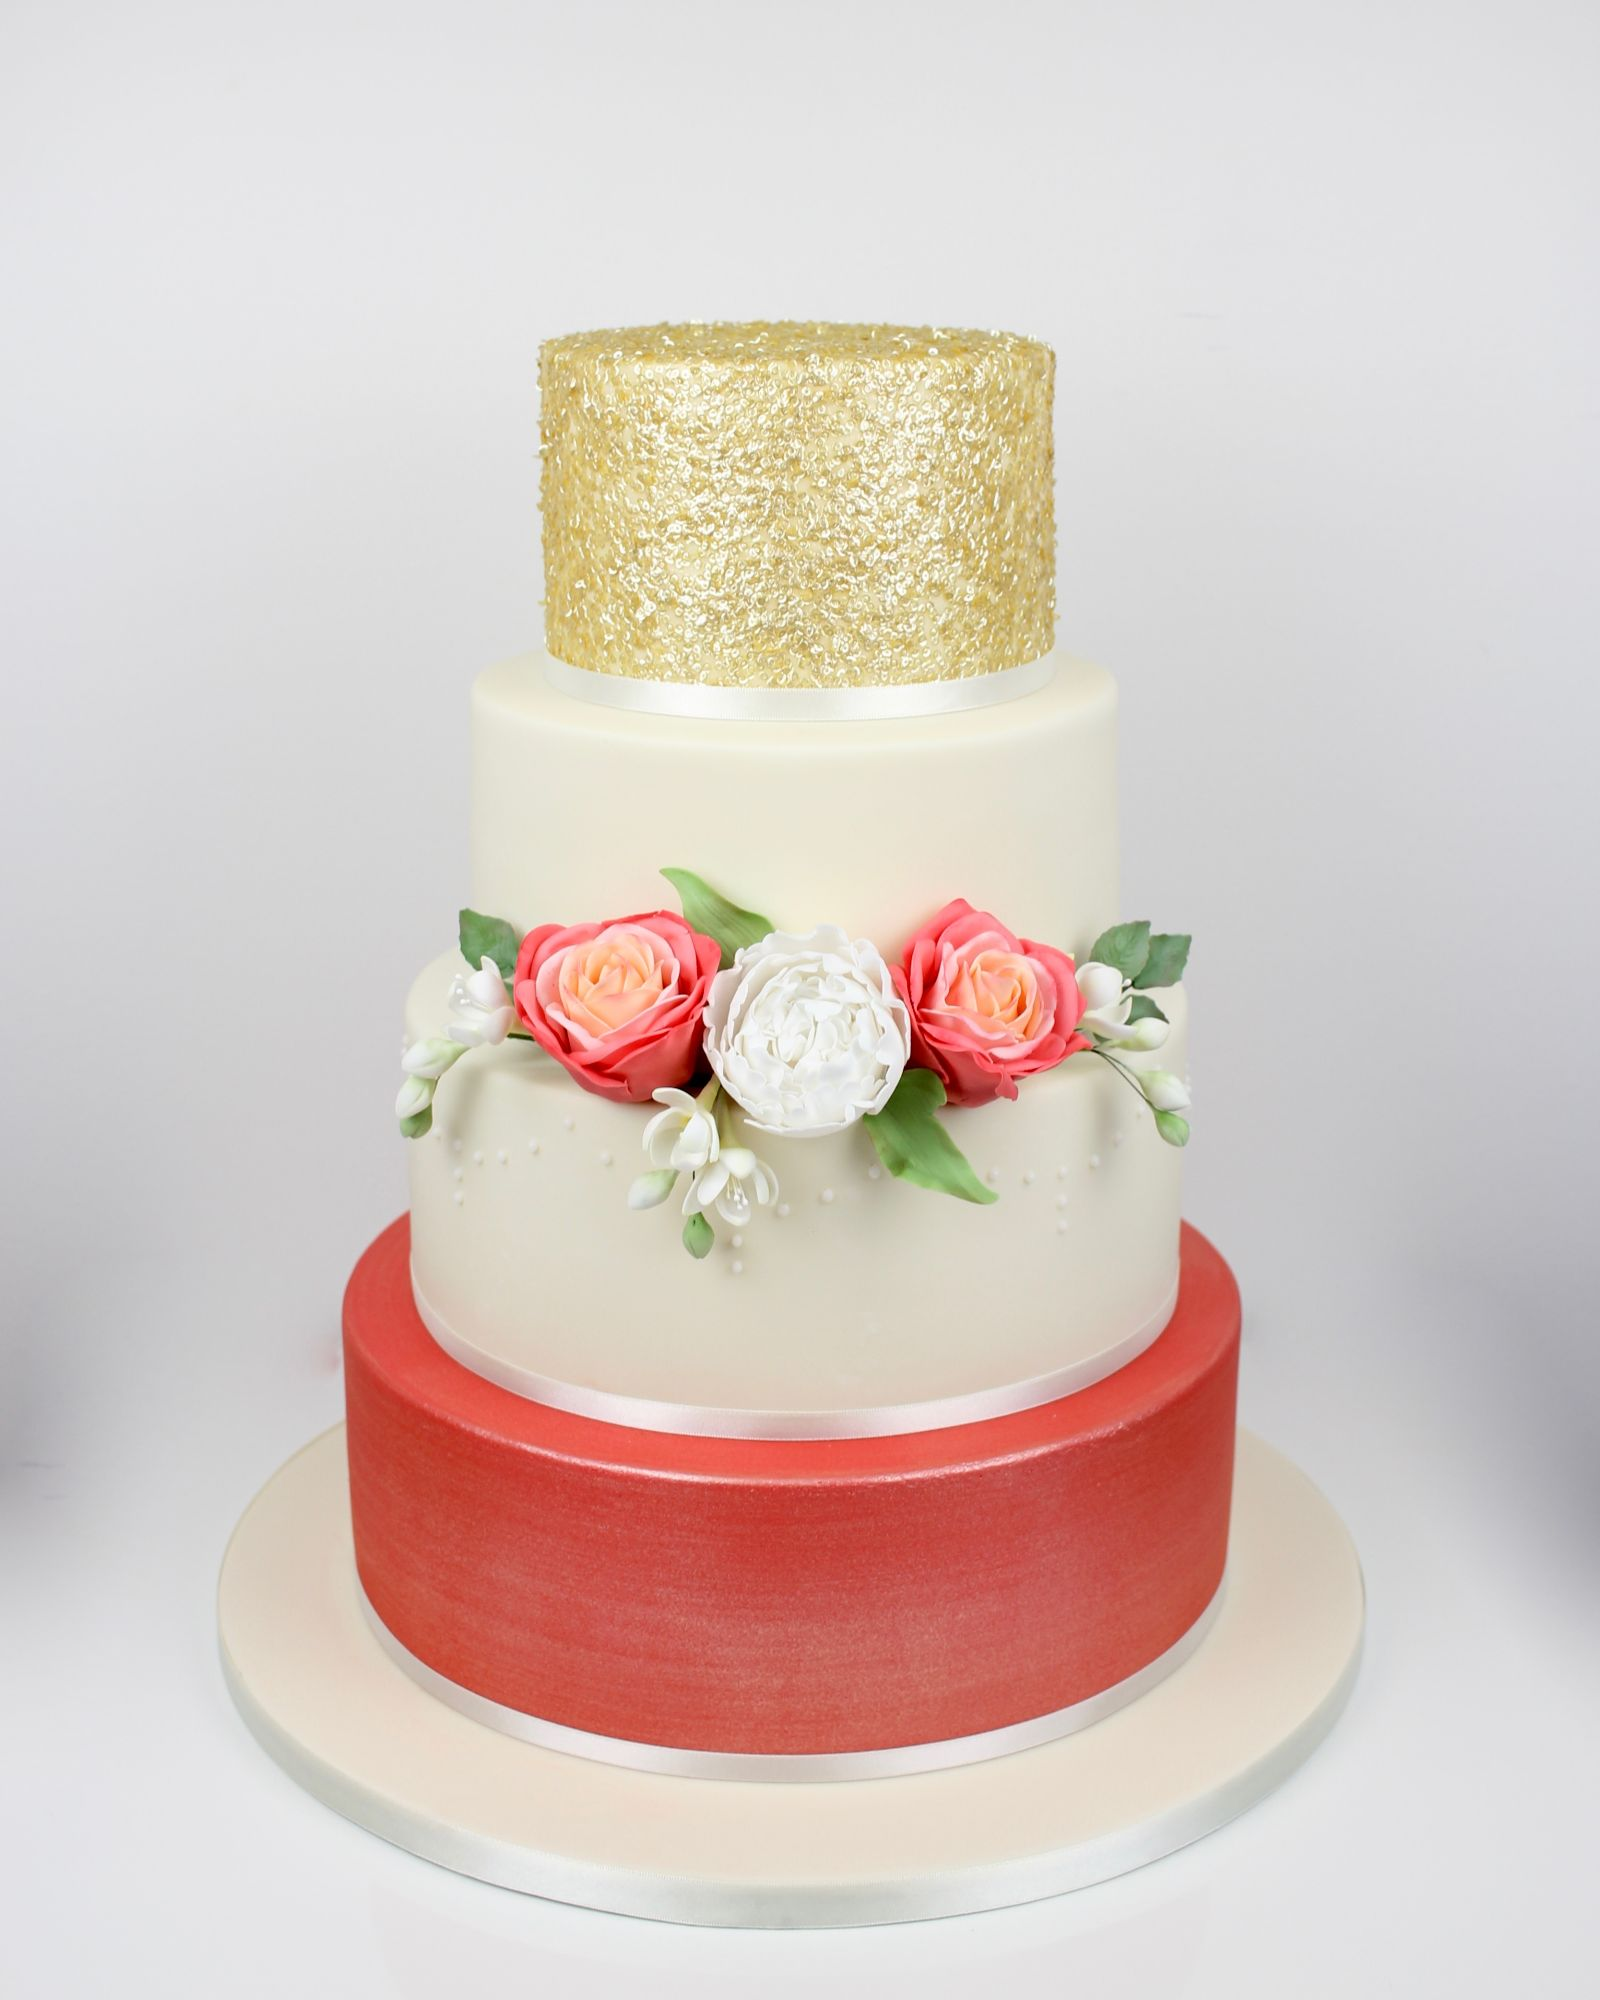 Coral & gold wedding cake